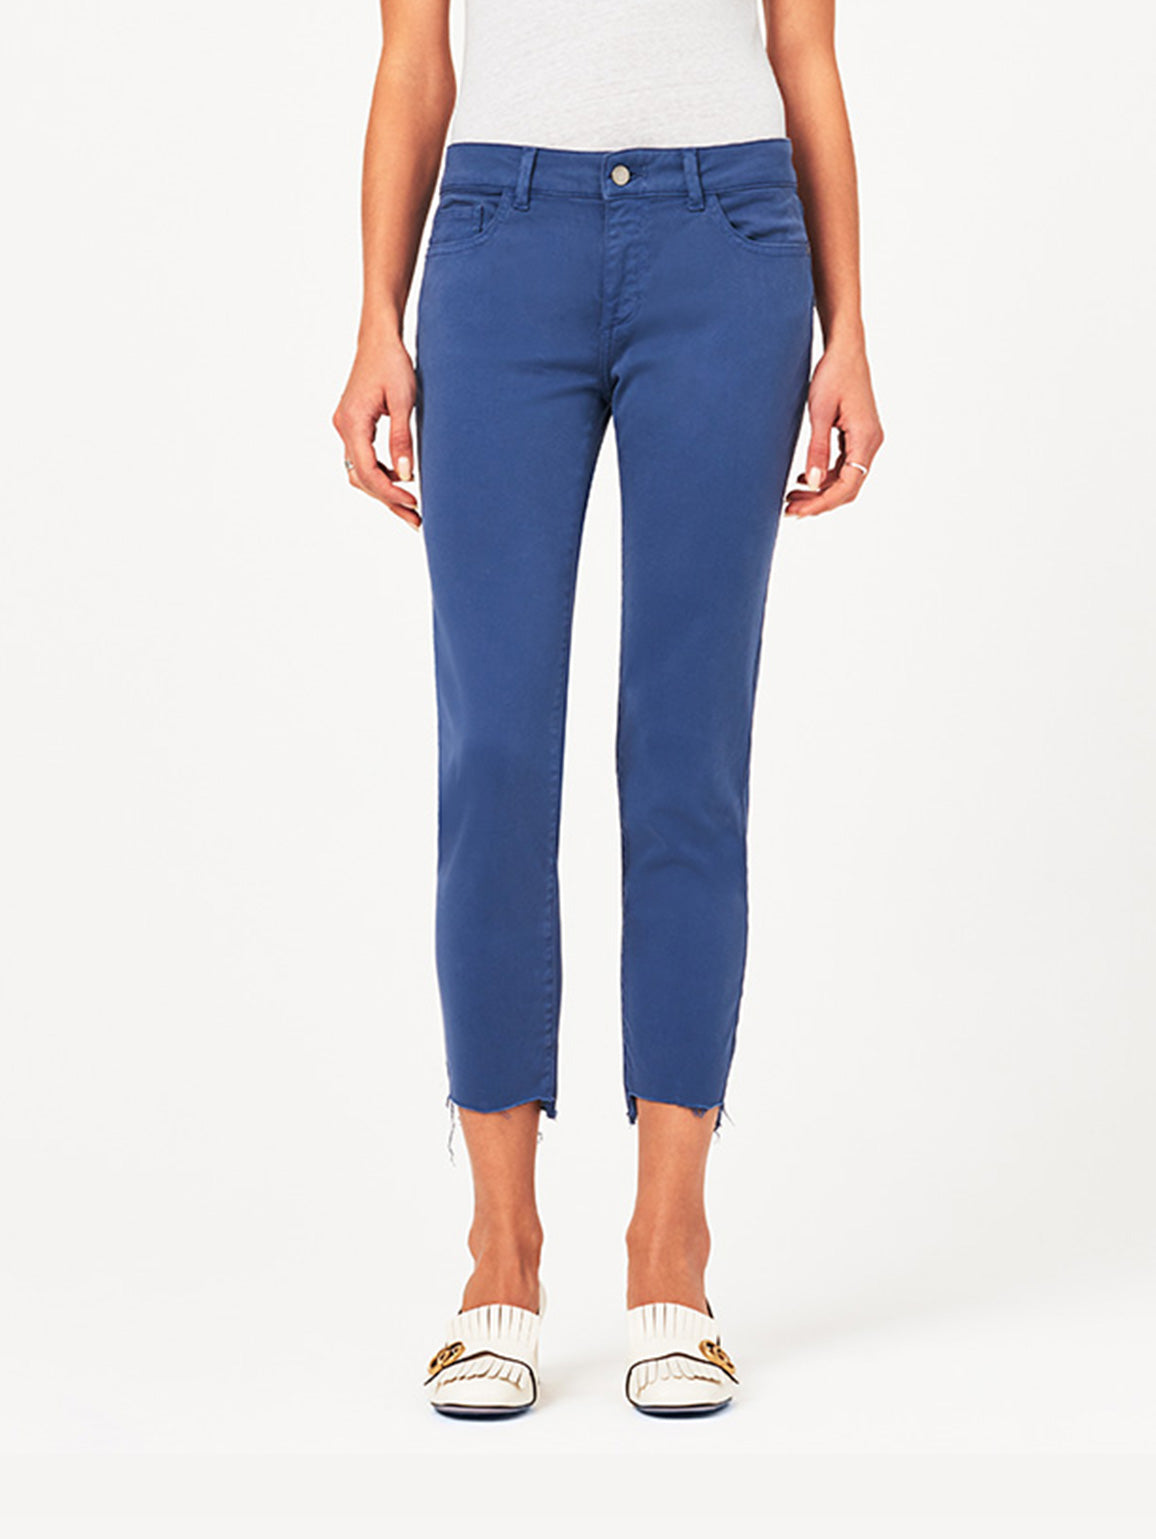 Image of Florence Crop Mid Rise Skinny / Bluebell